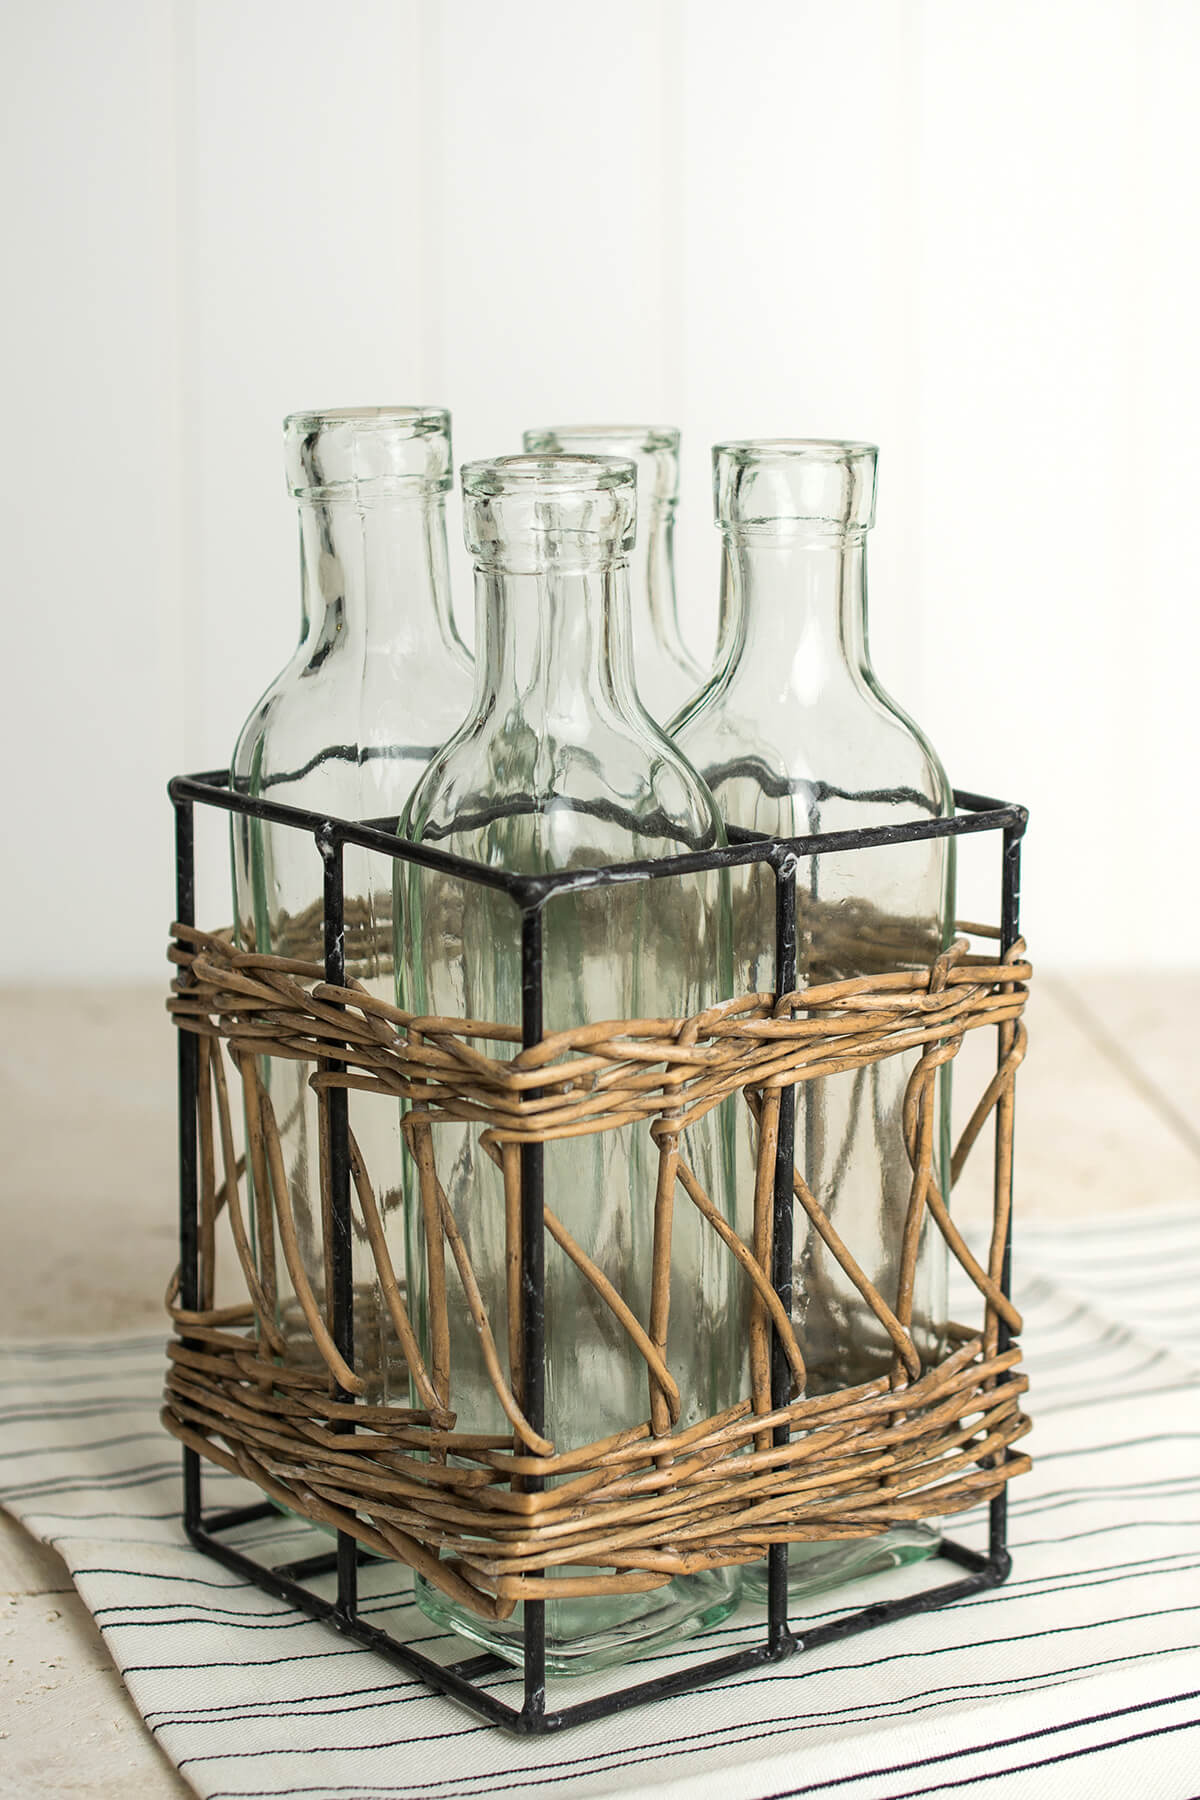 4 Glass Bottles in Willow Basket